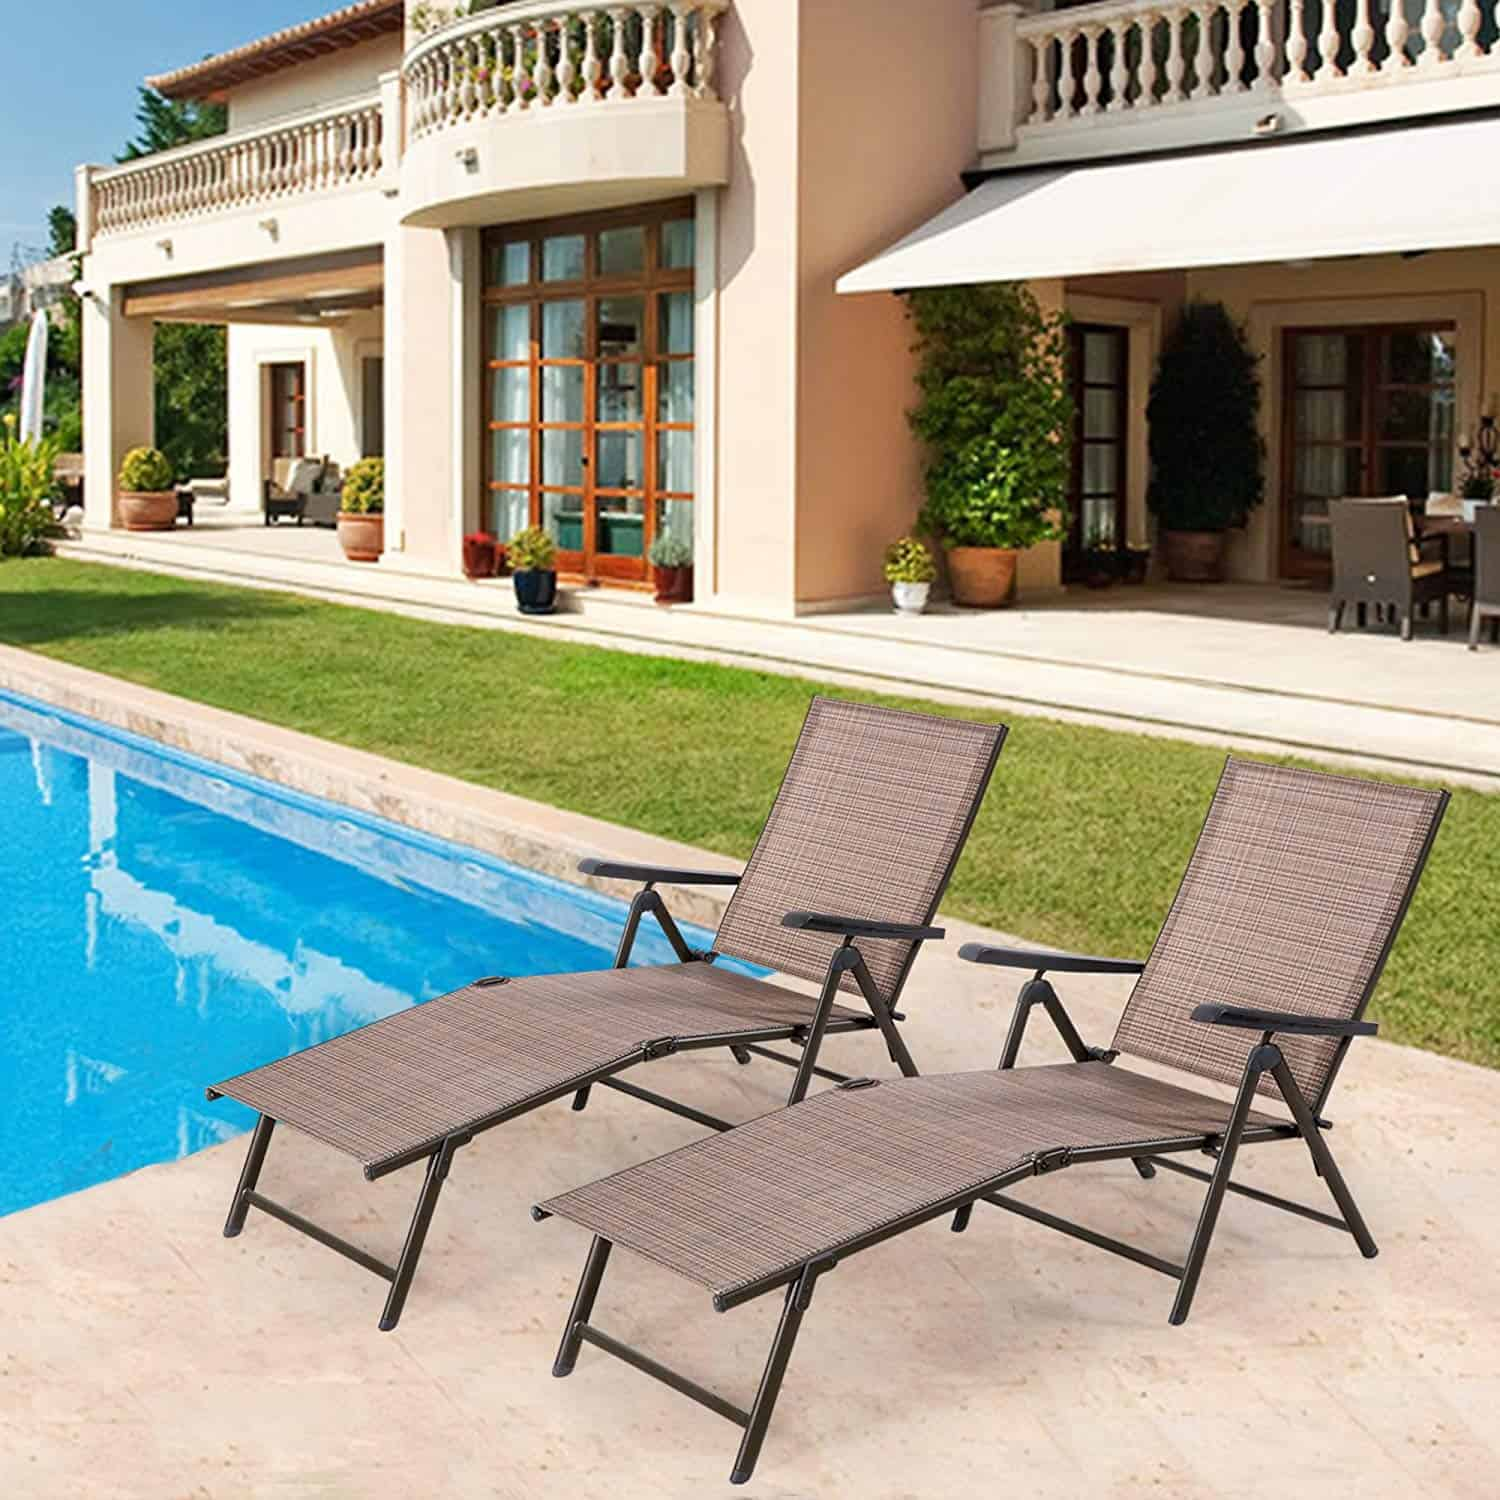 what are pool chairs made out of eddie bauer high chair recall best the rex garden take that hotel poolside experience into your home with this chaise lounge for it comes in a set 2 4 and 6 is durable